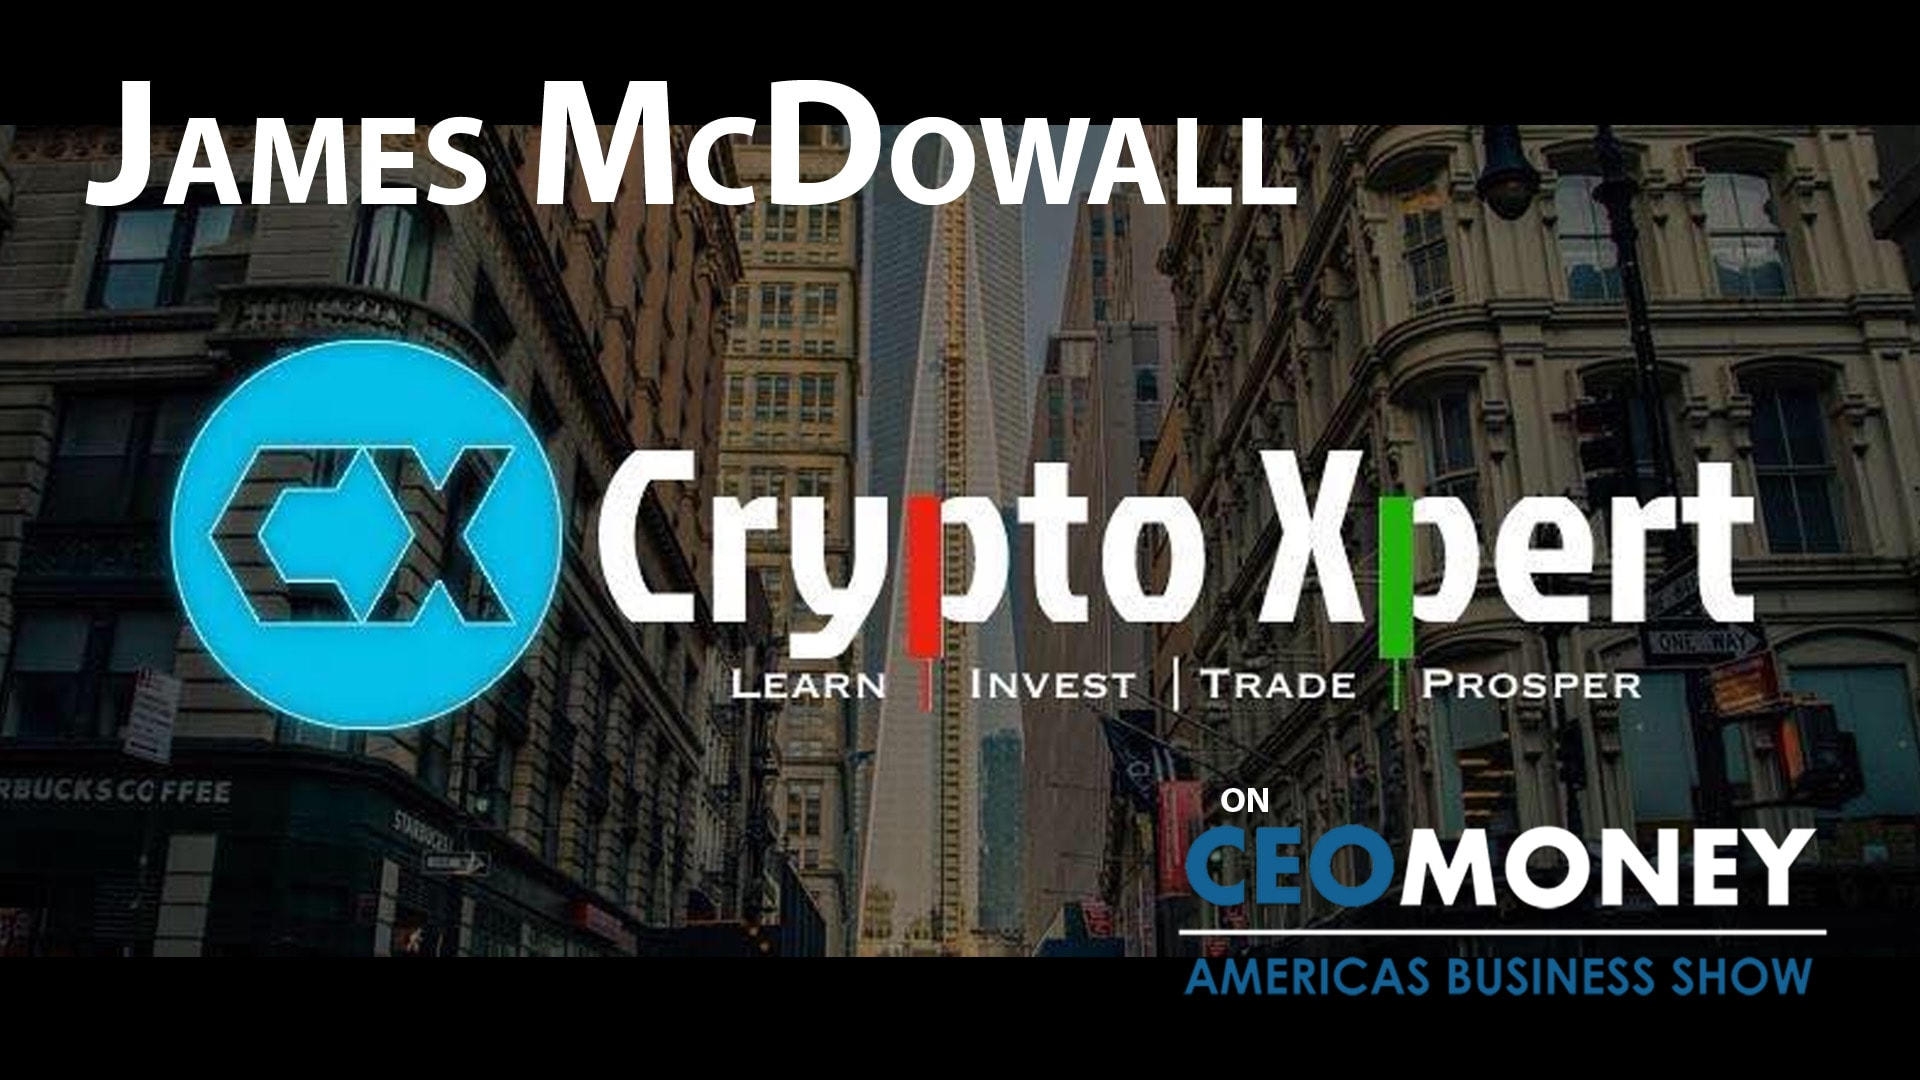 James McDowall is an expert at linking the worlds of blockchain and finance